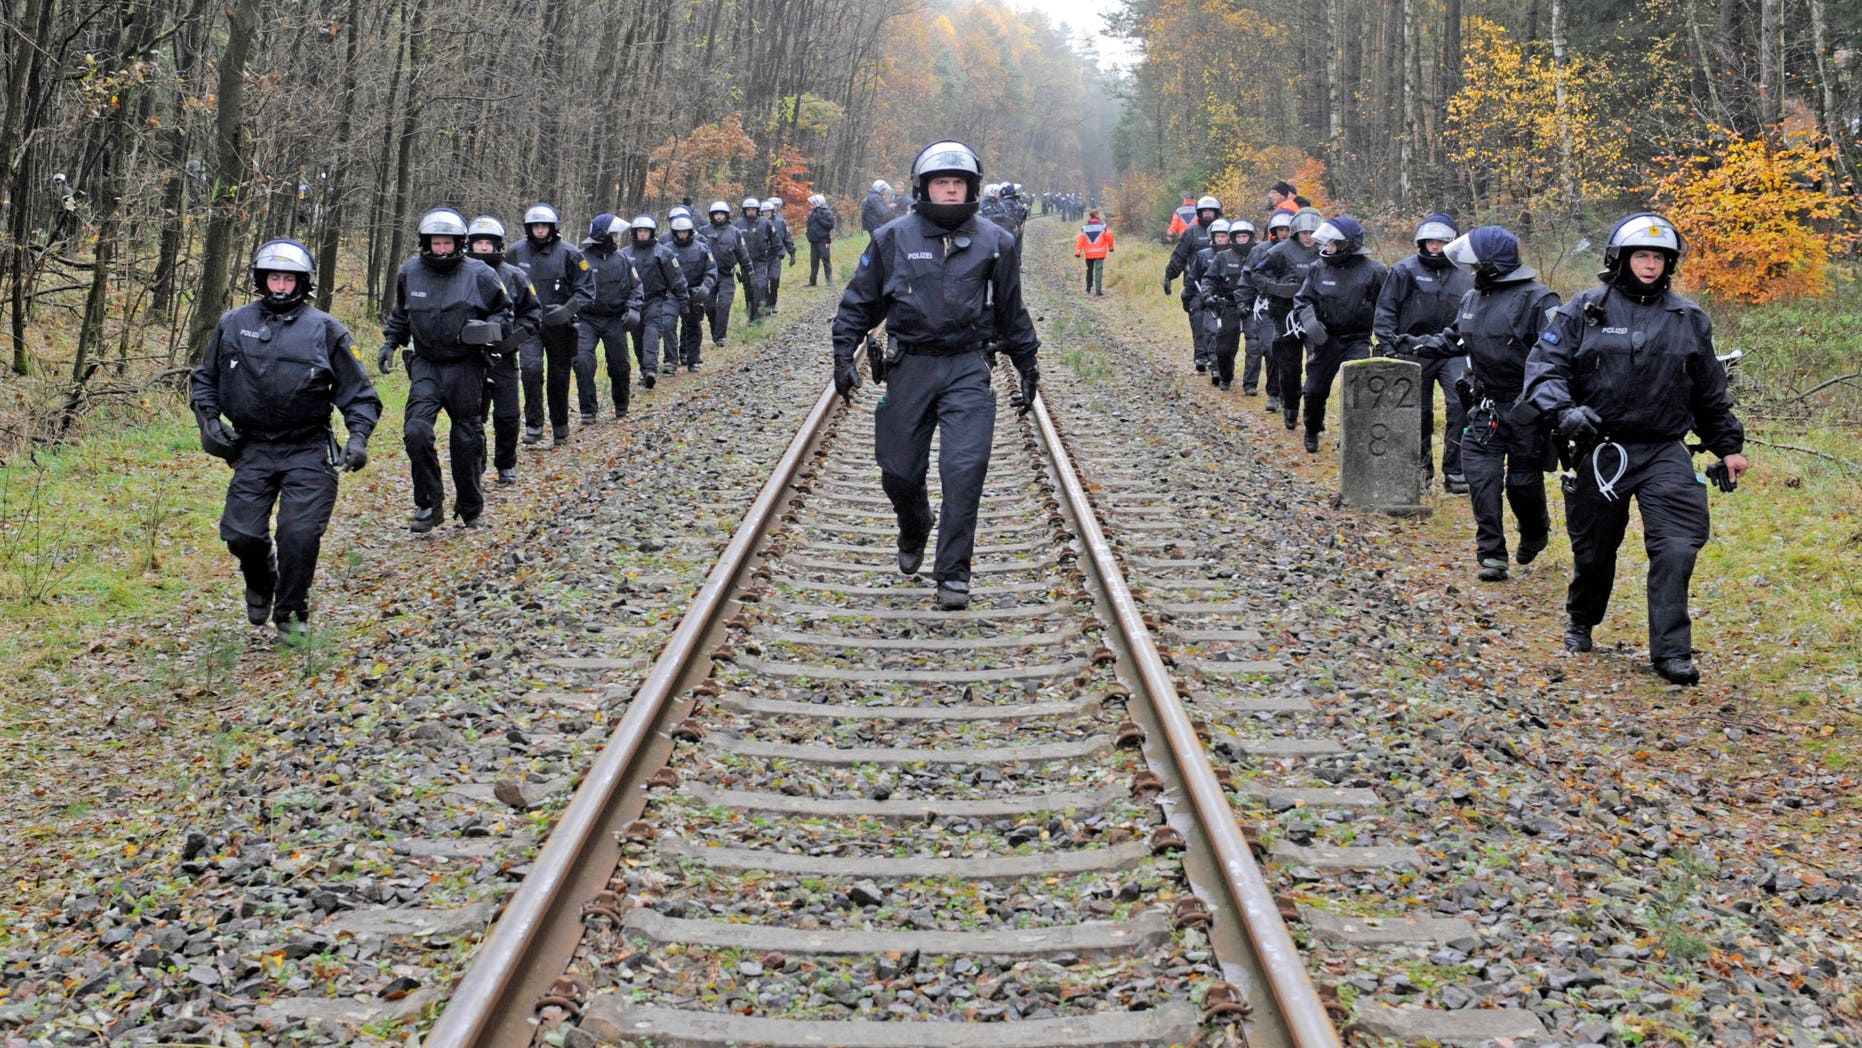 Nov. 7, 2011: Police officers secure the rails near Leitstade, Germany, prior to a nuclear waste transport passing through the area. German police are preparing a big security operation to protect a shipment of nuclear waste being moved to storage site next week, as protests are expected despite a decision to speed up the country's exit from nuclear energy.